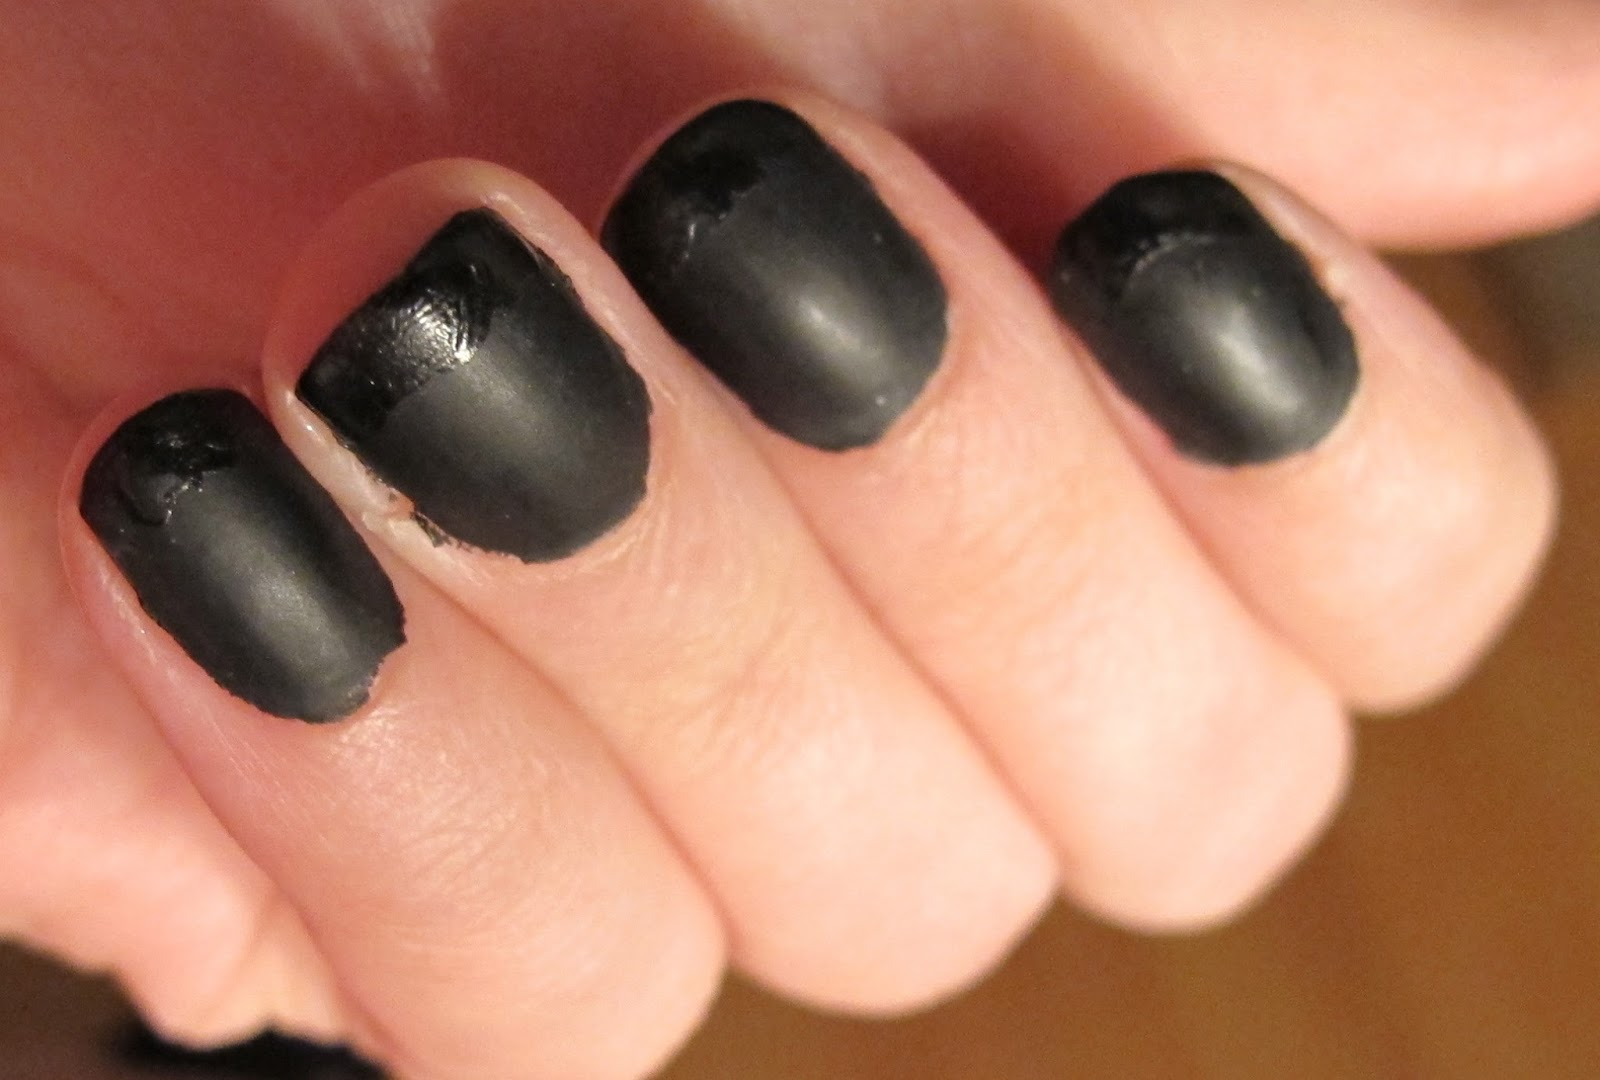 Steph Stud Makeup: Matte Black French Manicure (with Glossy Tips)